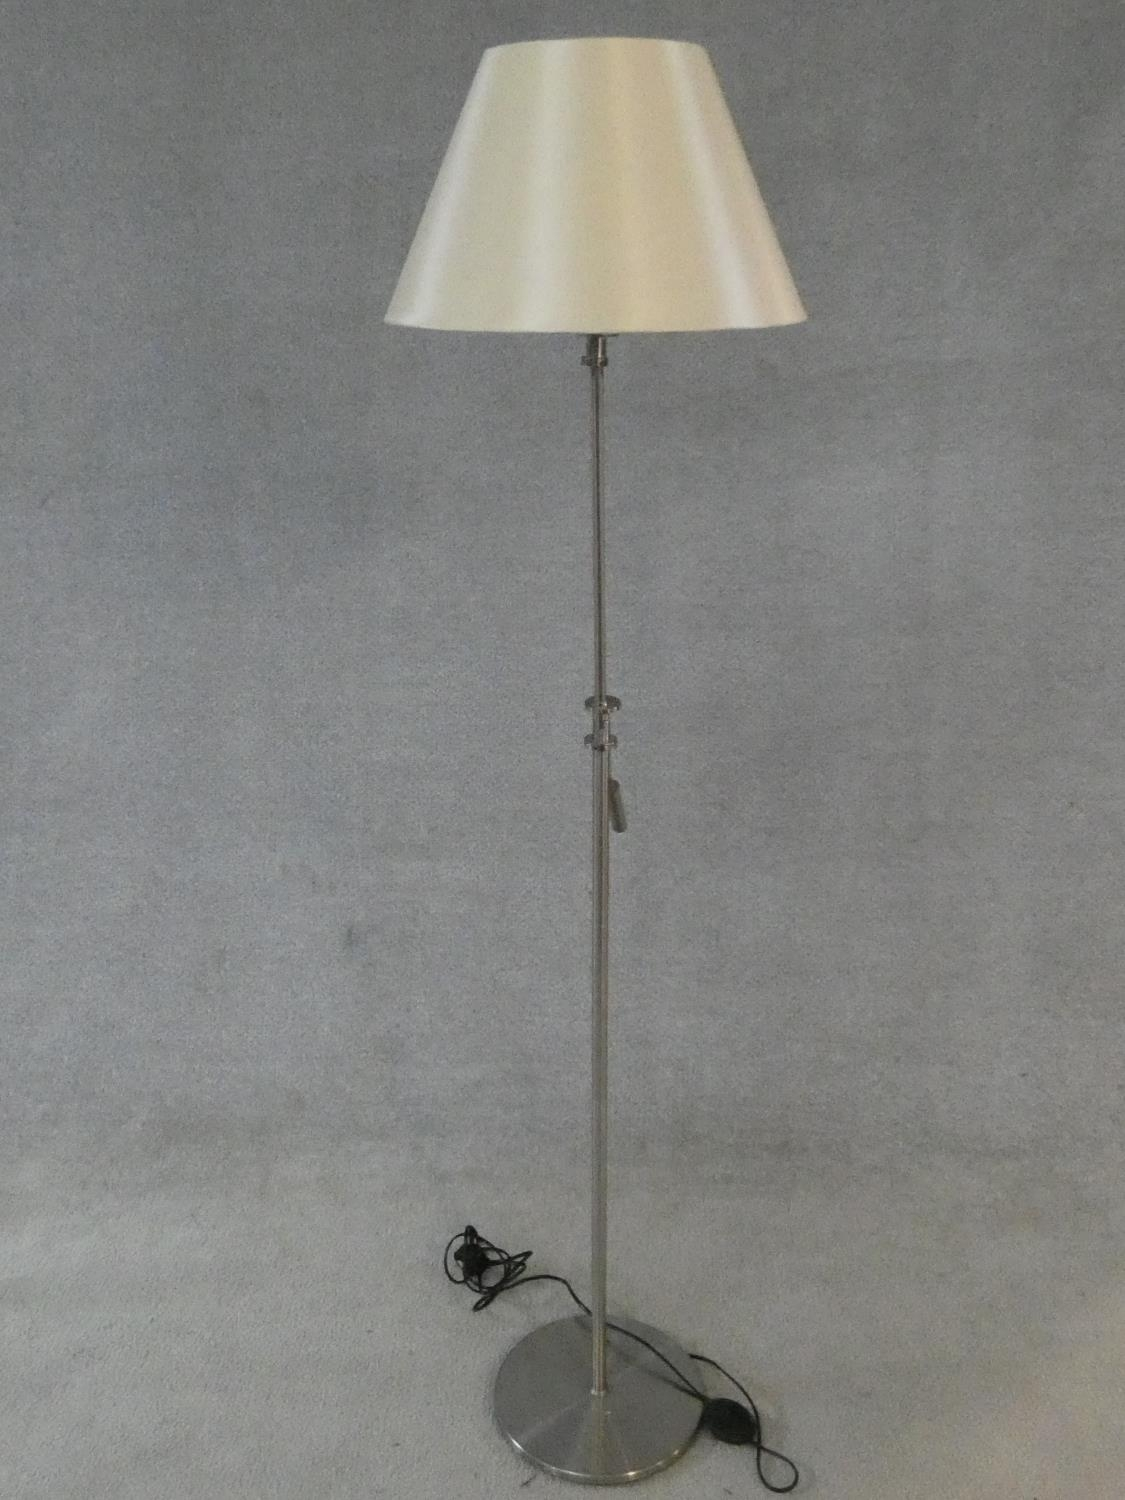 Two brass standard lamps with articulated actions and a chrome adjustable standard lamp. H.162cm - Image 7 of 16